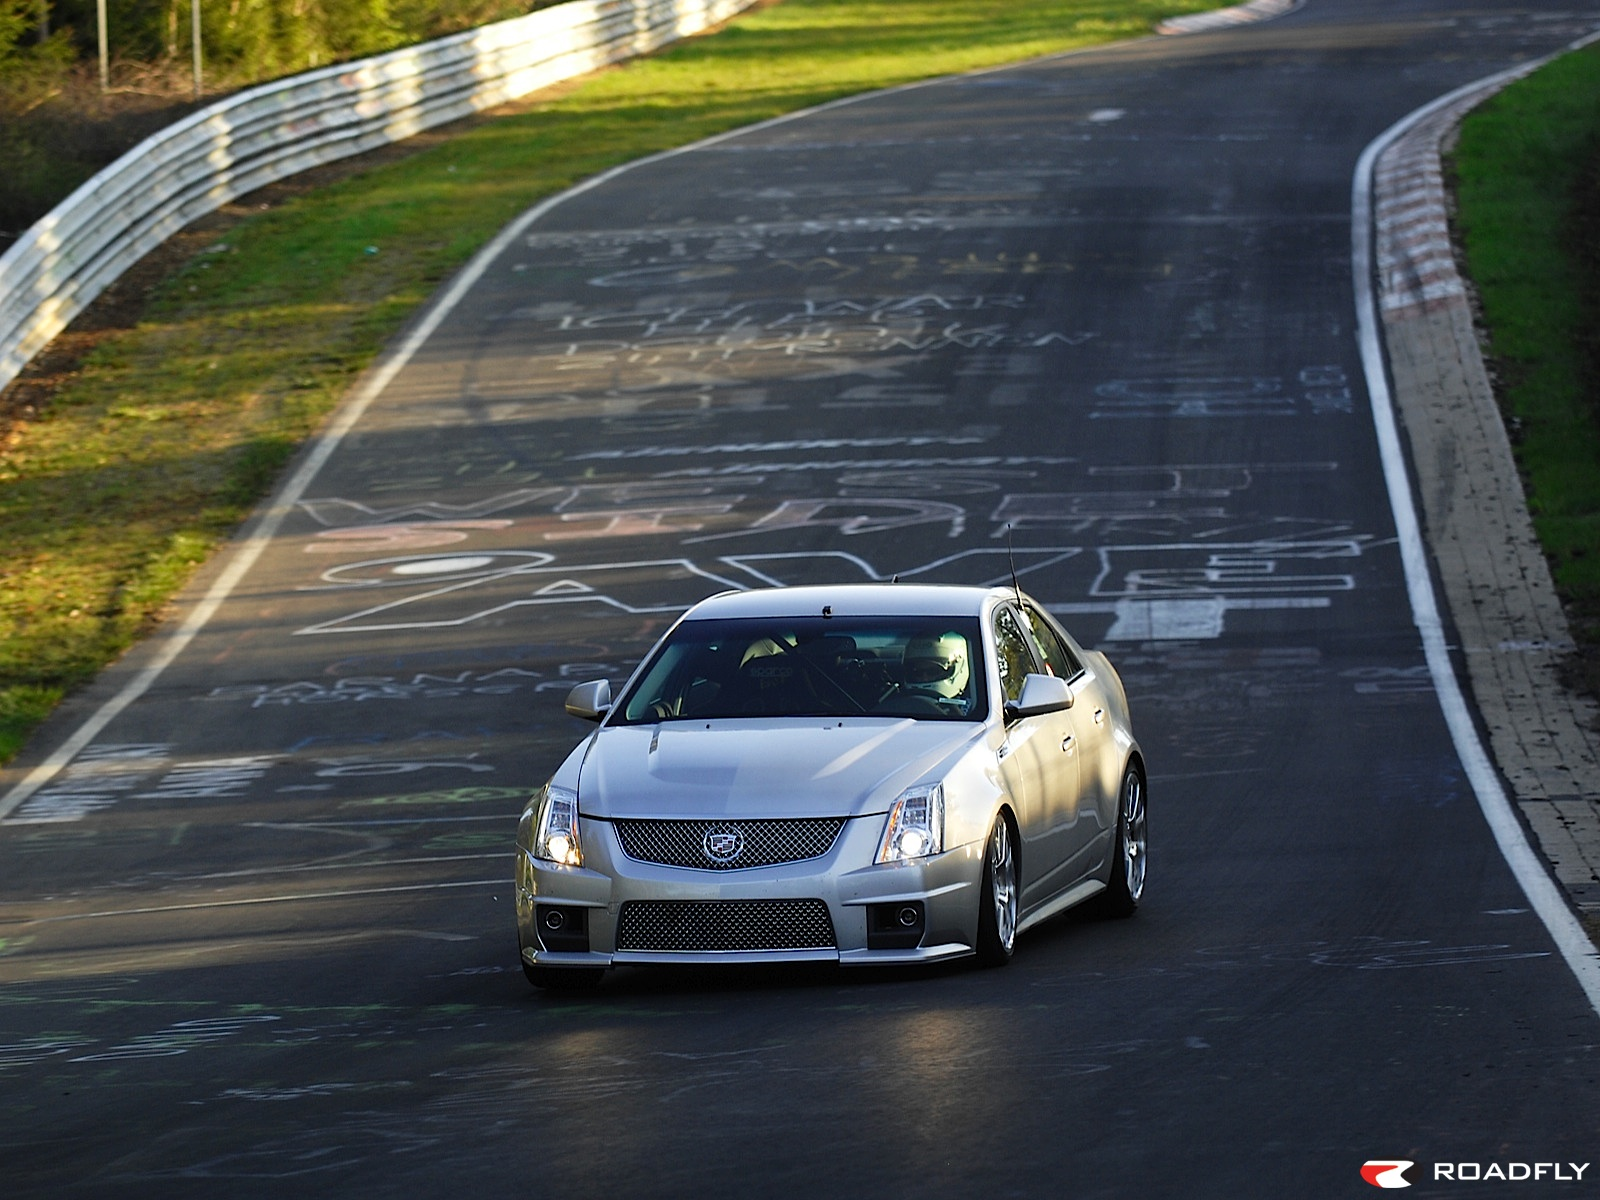 2009 Cadillac CTS-V faster than Carrera Wallpaper For Phone